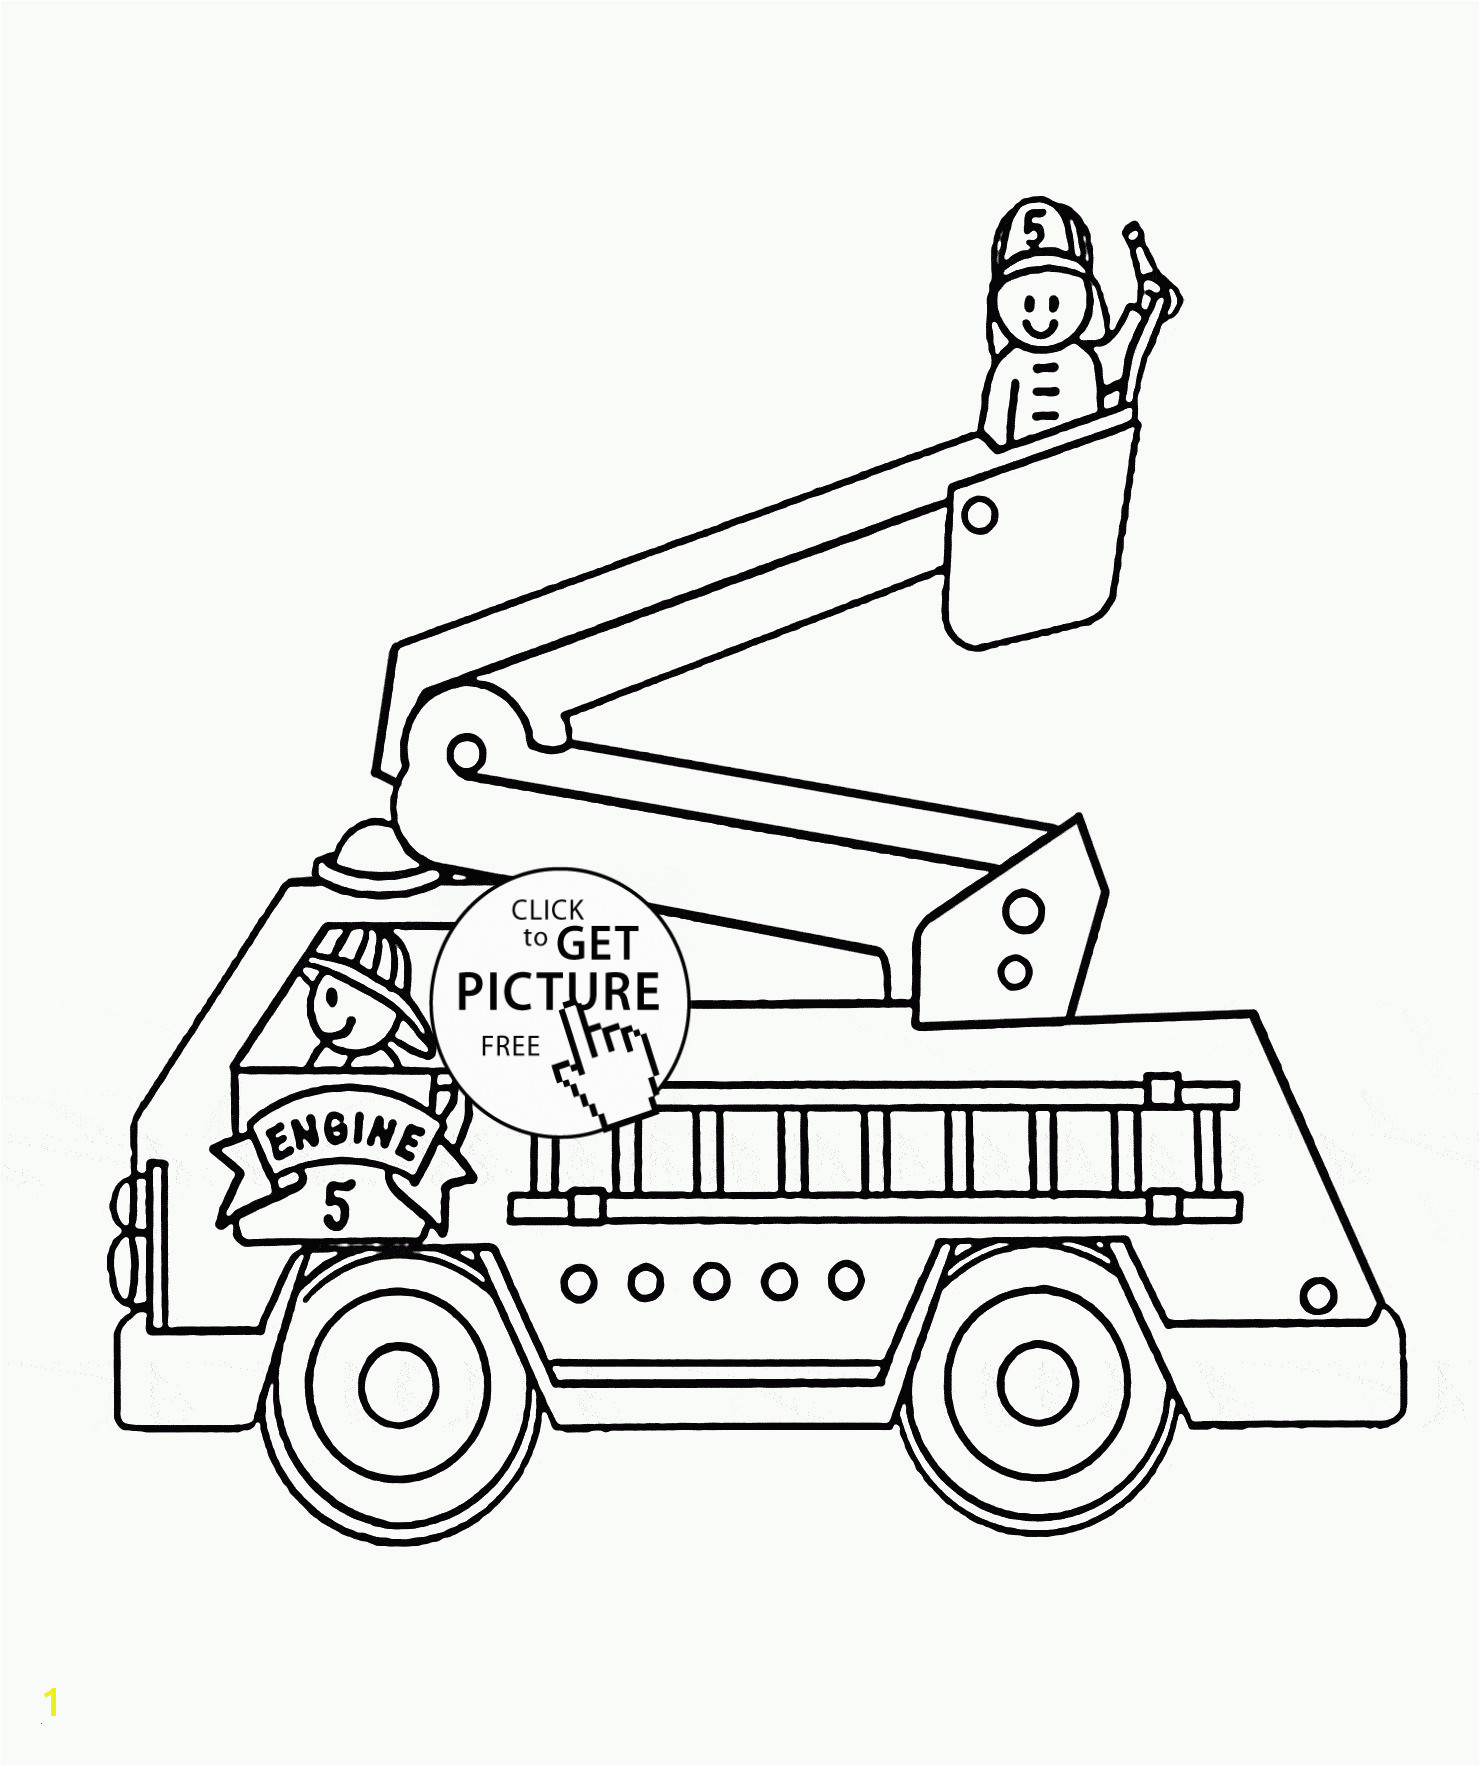 Fire Truck Coloring Pages Fire Safety Coloring Pages Popular Fire Safety Coloring Books Lovely Fire